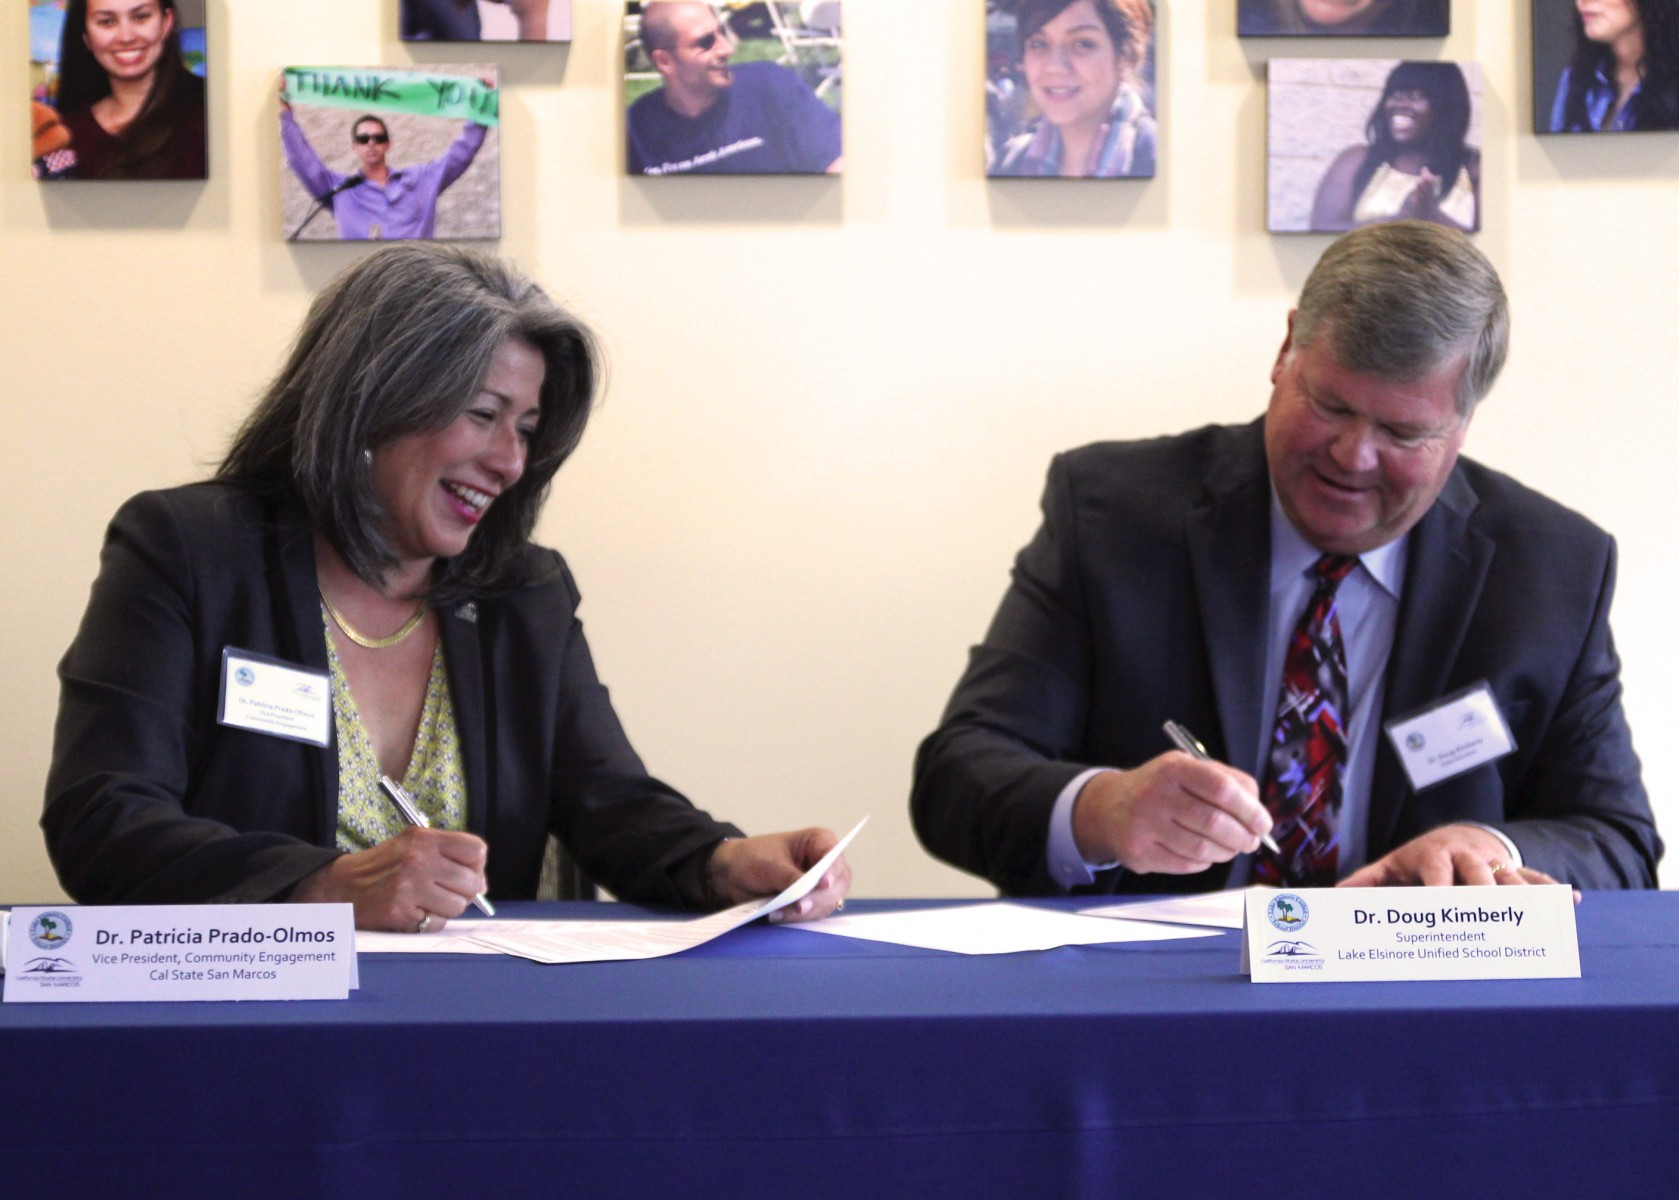 Lake Elsinore Unified School District MOU Signing